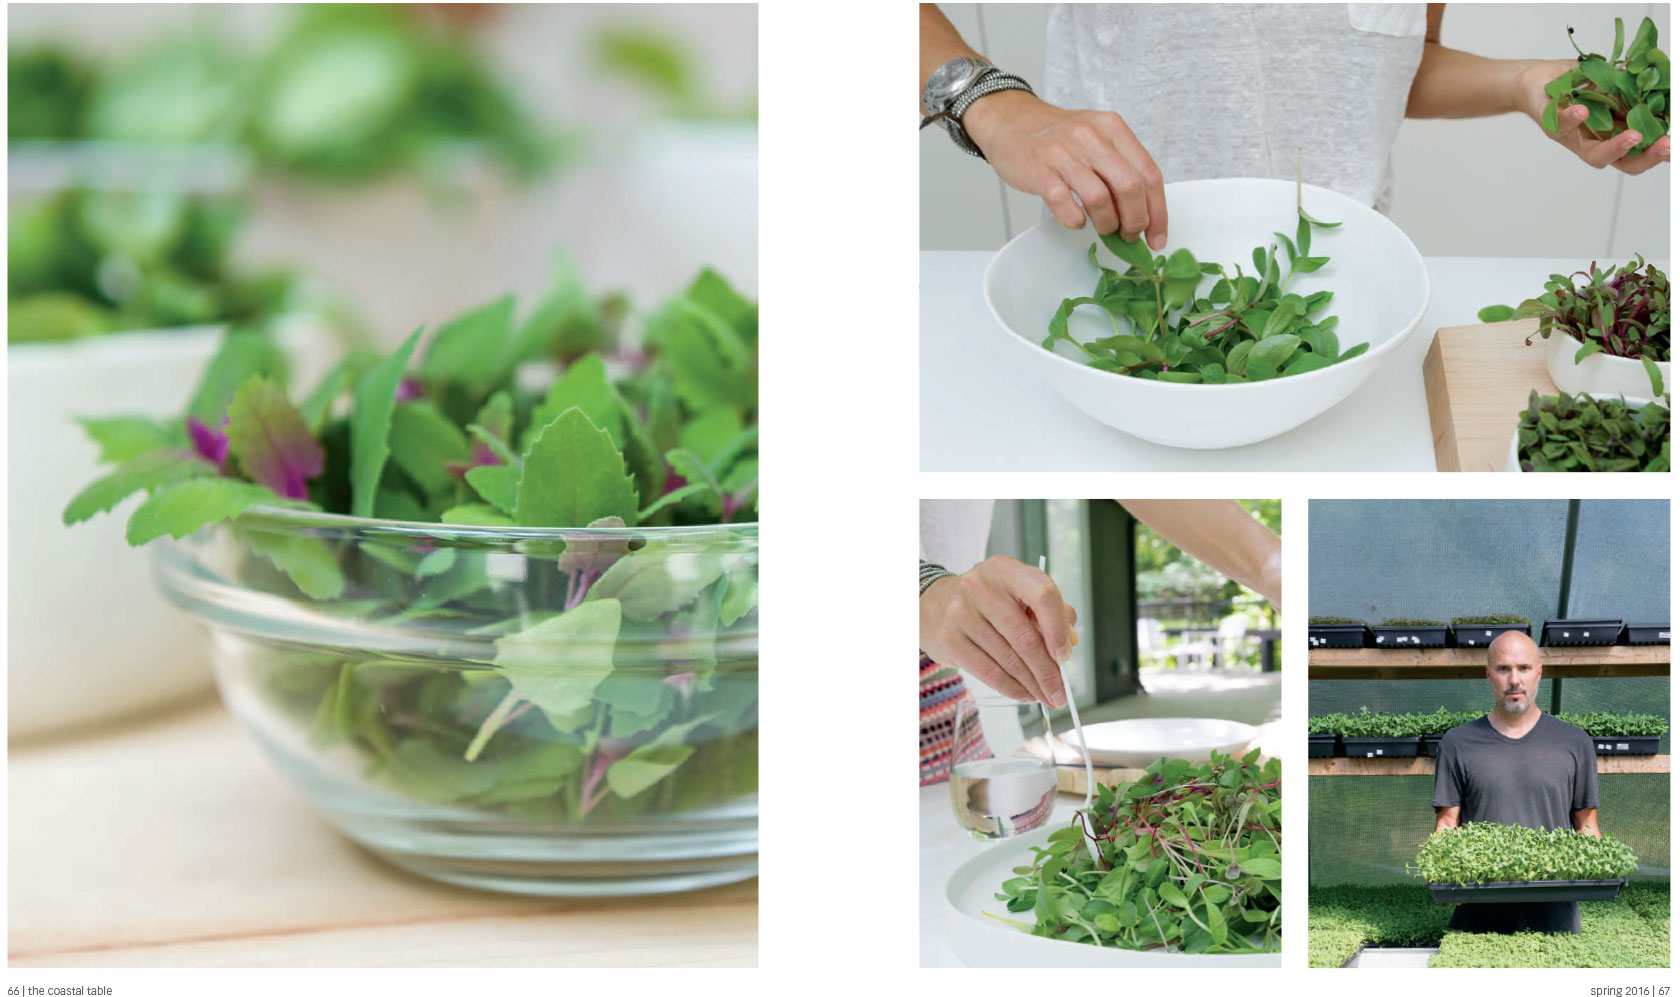 Goodwater Farms Micro Greens, pg 4, The Coastal Table, Morgan Ione Yeager